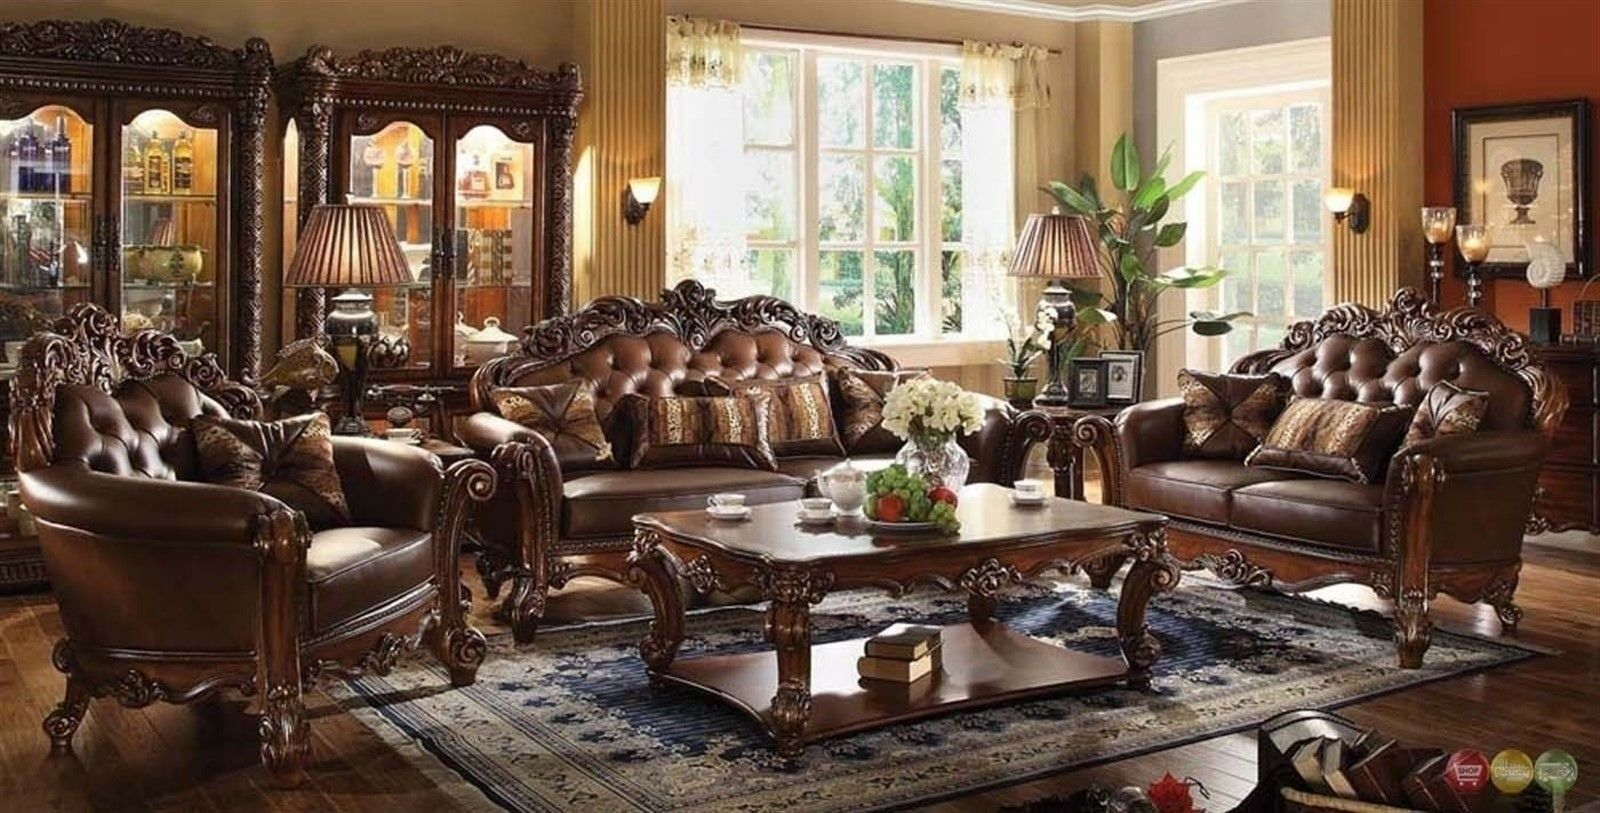 Vendome Traditional Brown 6 Pc Formal Living Room Set Sofa Loveseat Chair  Tables